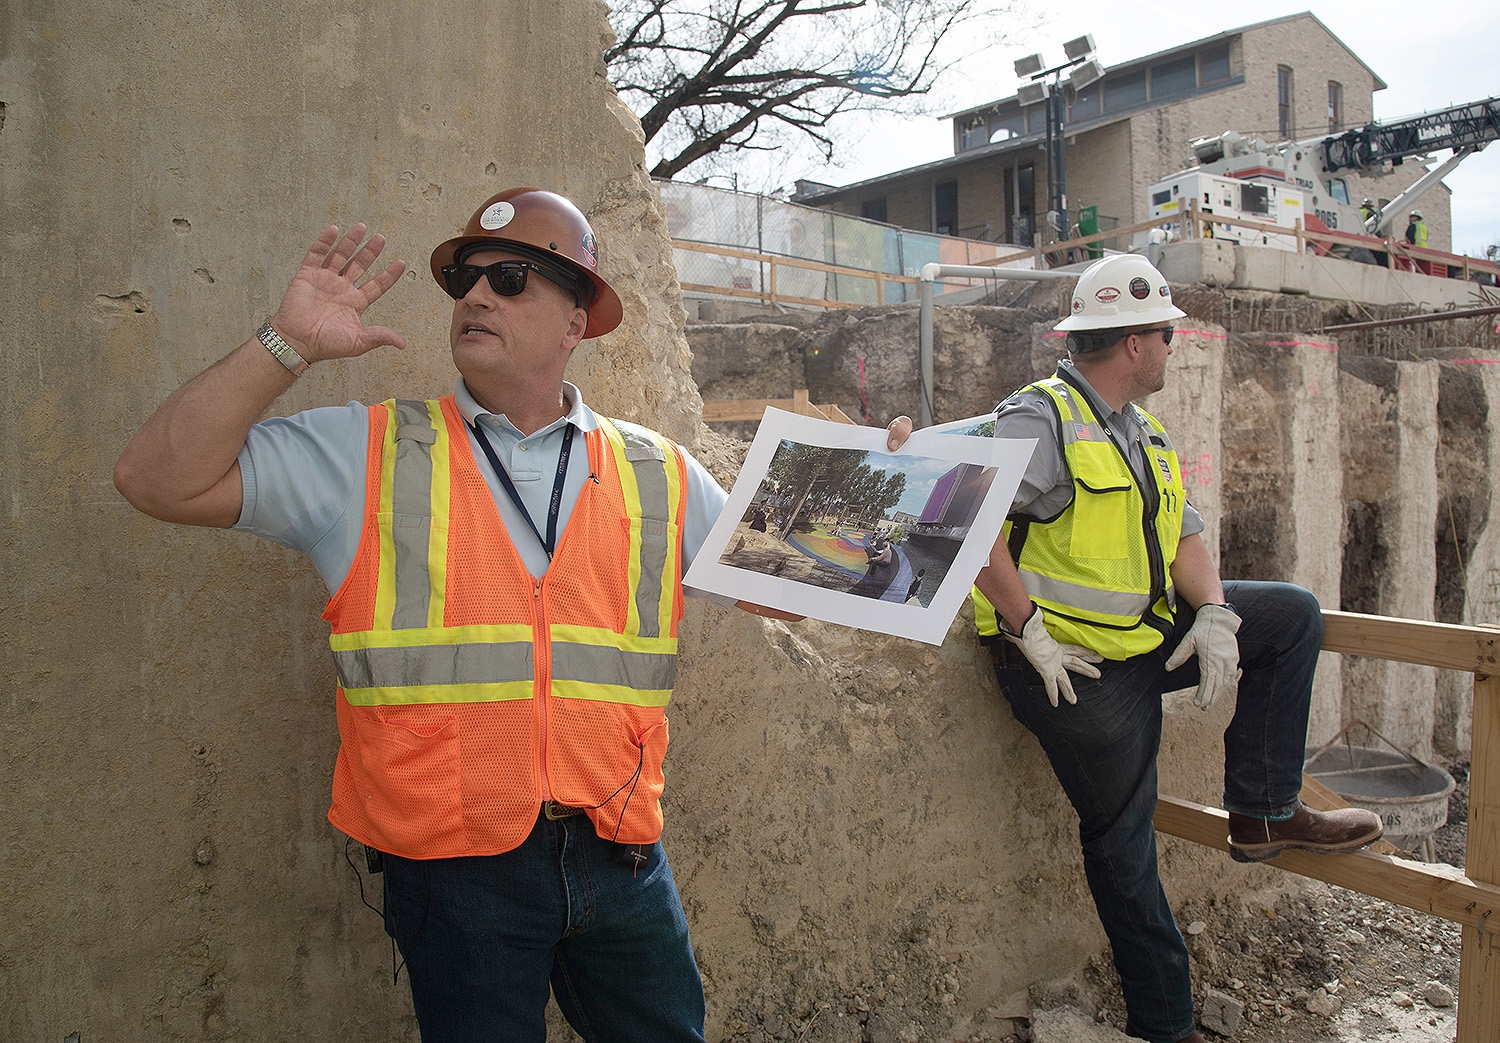 Kerry Averyt, senior engineer and project manager for the San Antonio River Authority, speaks at the end of a tour over the second segment of the San Pedro Creek Culture Park Feb. 15.